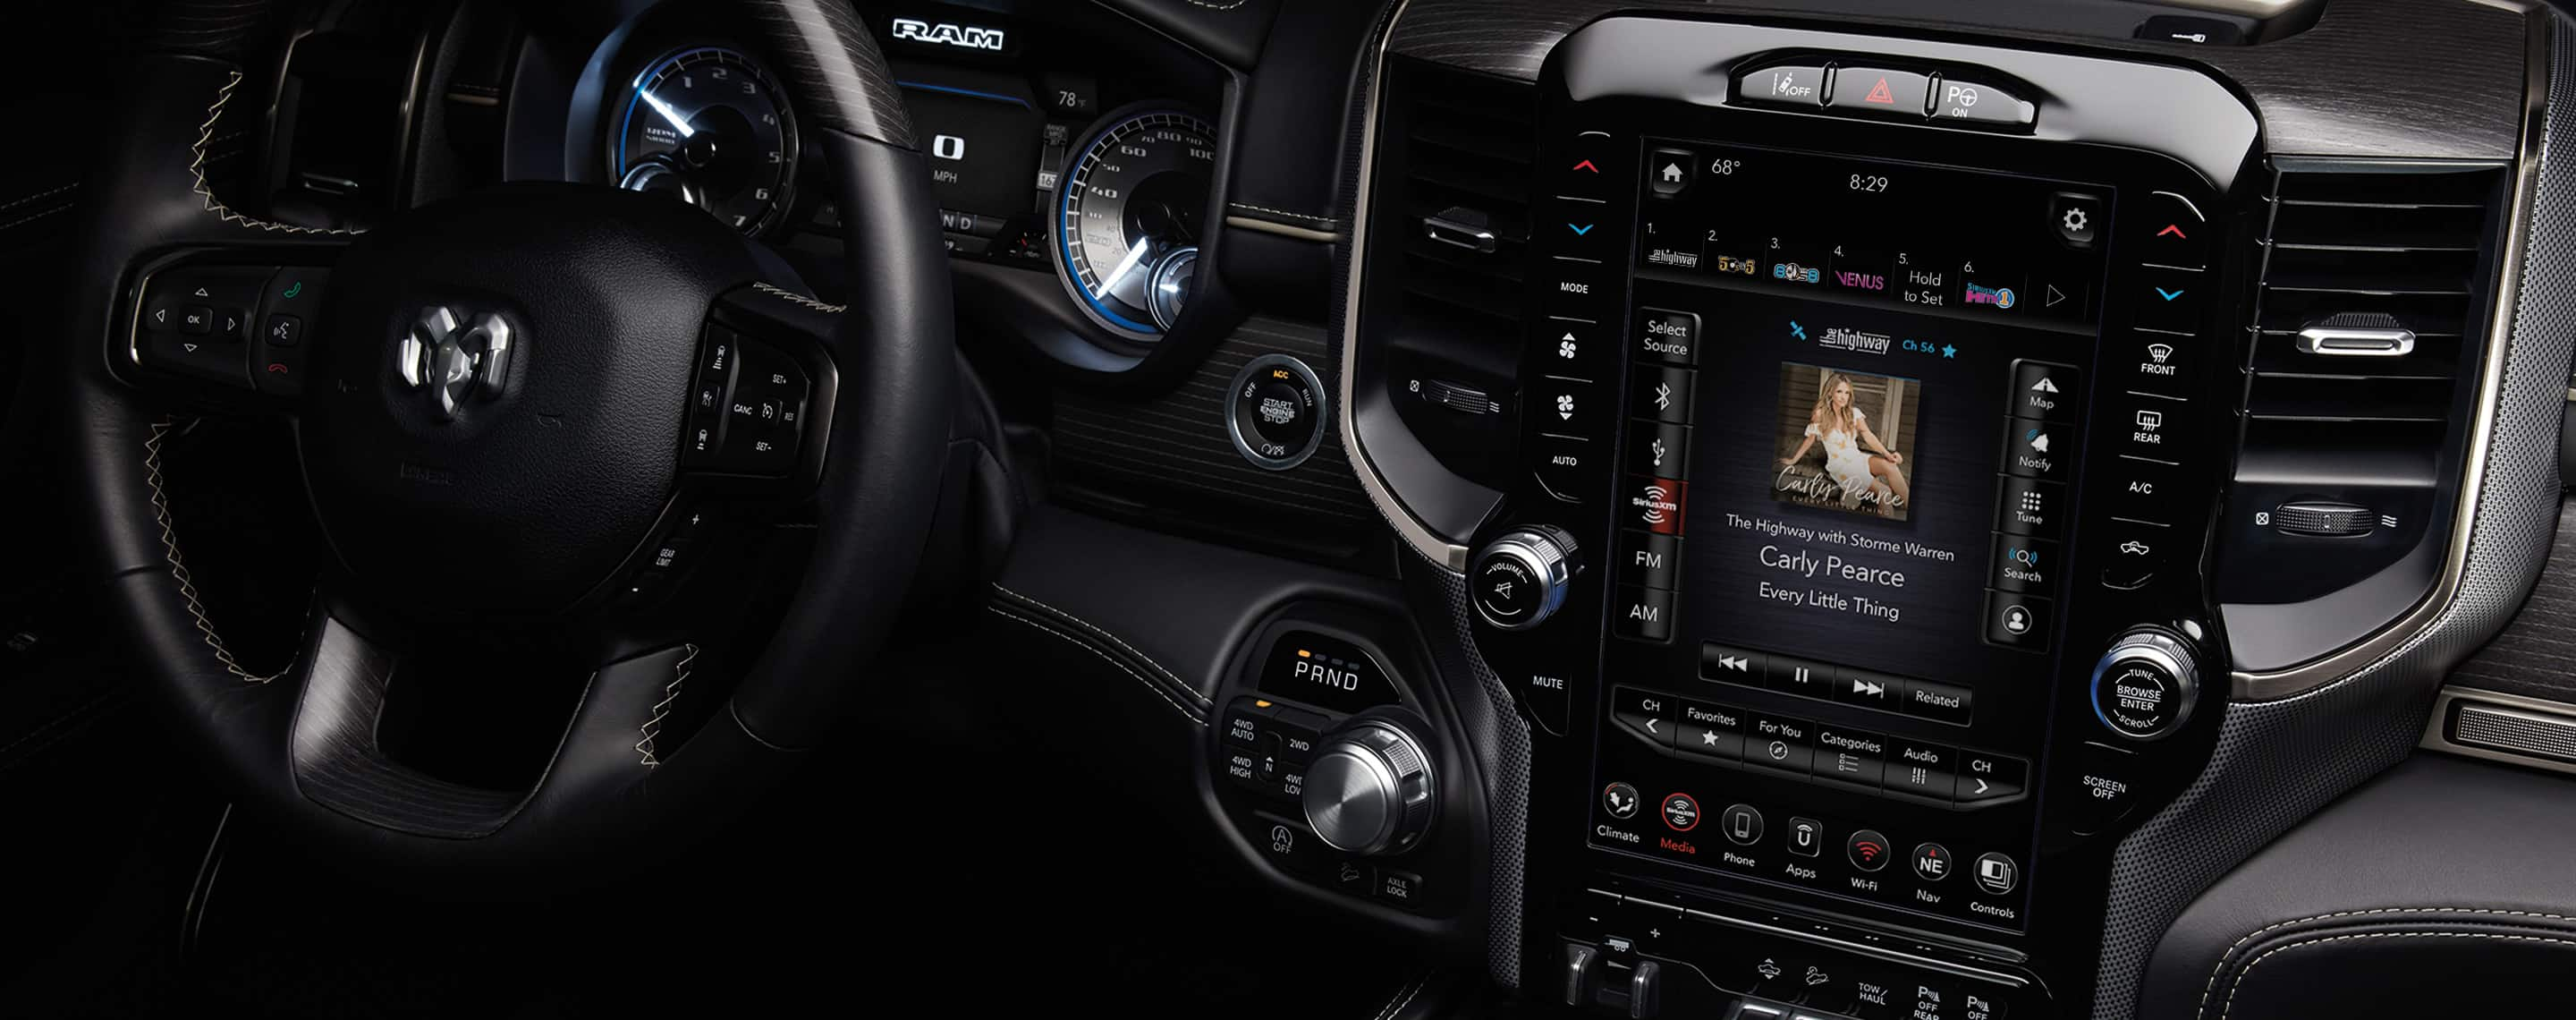 The all-new 2019 Ram 1500. The available U-Connect 12.0 with Navigation features a largest-in-class 12-inch touchscreen. A customizable home screen with split-screen capability, pinch-and-zoom technology and redundant controls for key features makes it easy to access your favorite features and apps. Full-screen Navigation helps keep you on course and SiriusXM with 360L keeps you connected to your entertainment wherever you go, with enhanced usability and hours of on-demand content.